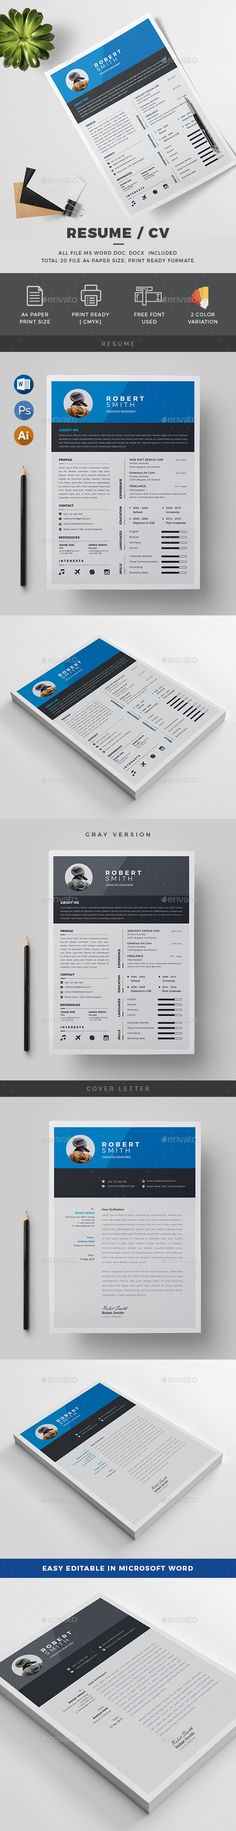 CV Word Ai illustrator, Cv template and Modern resume - how to make resume on word